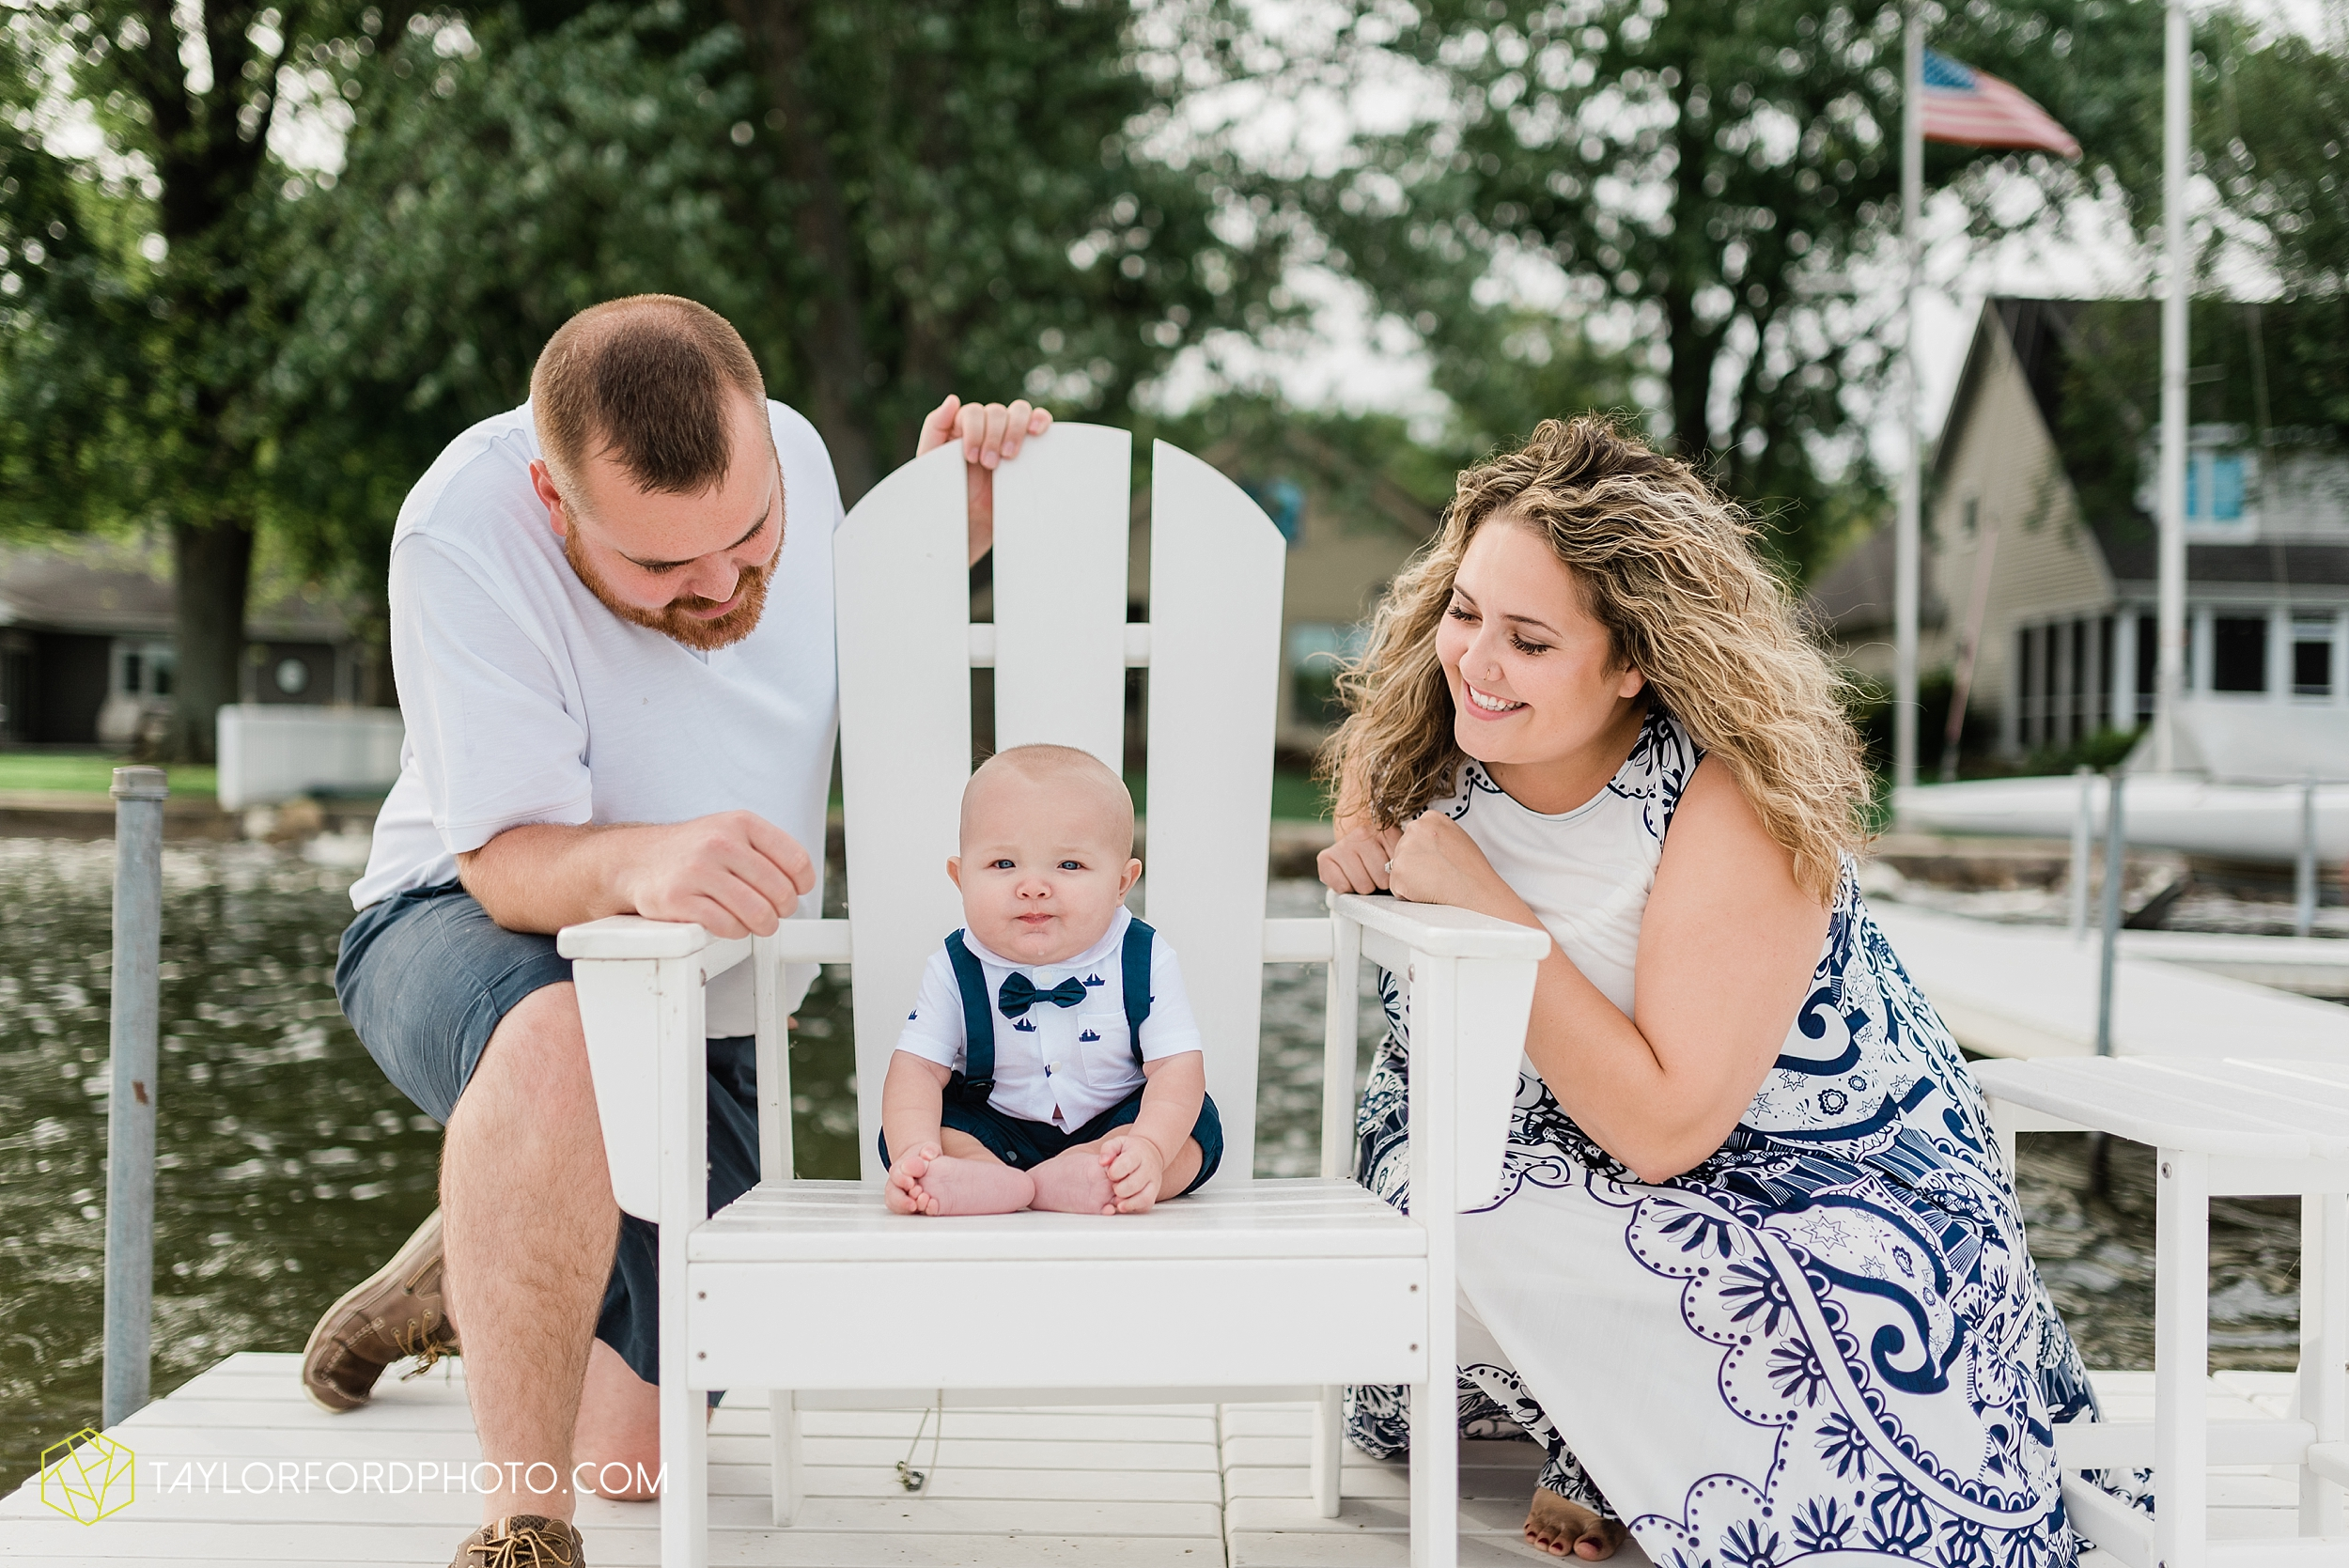 lake-wawasee-conklin-bay-lifestyle-family-september-late-fall-photographer-taylor-ford-photography_0600.jpg